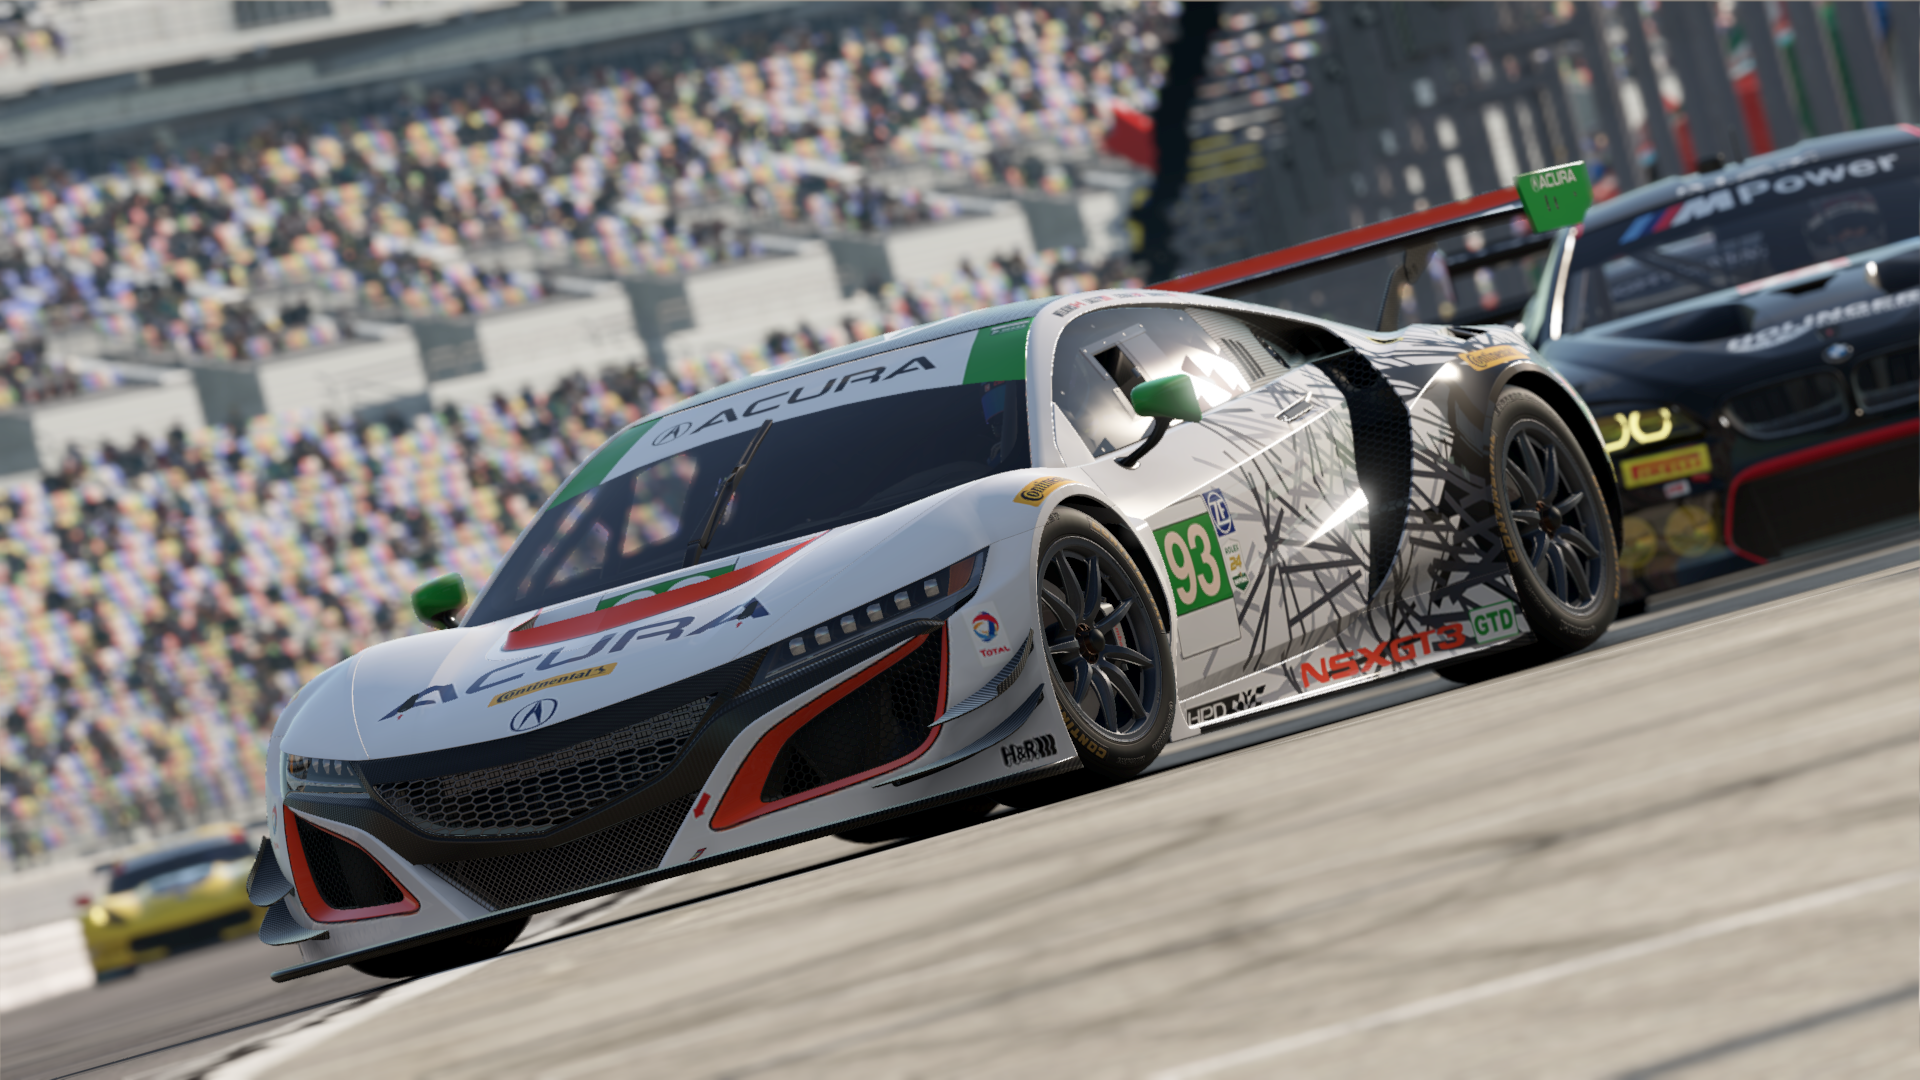 Assetto Corsa, F1 2017 and Project CARS 2 Featured in Steam